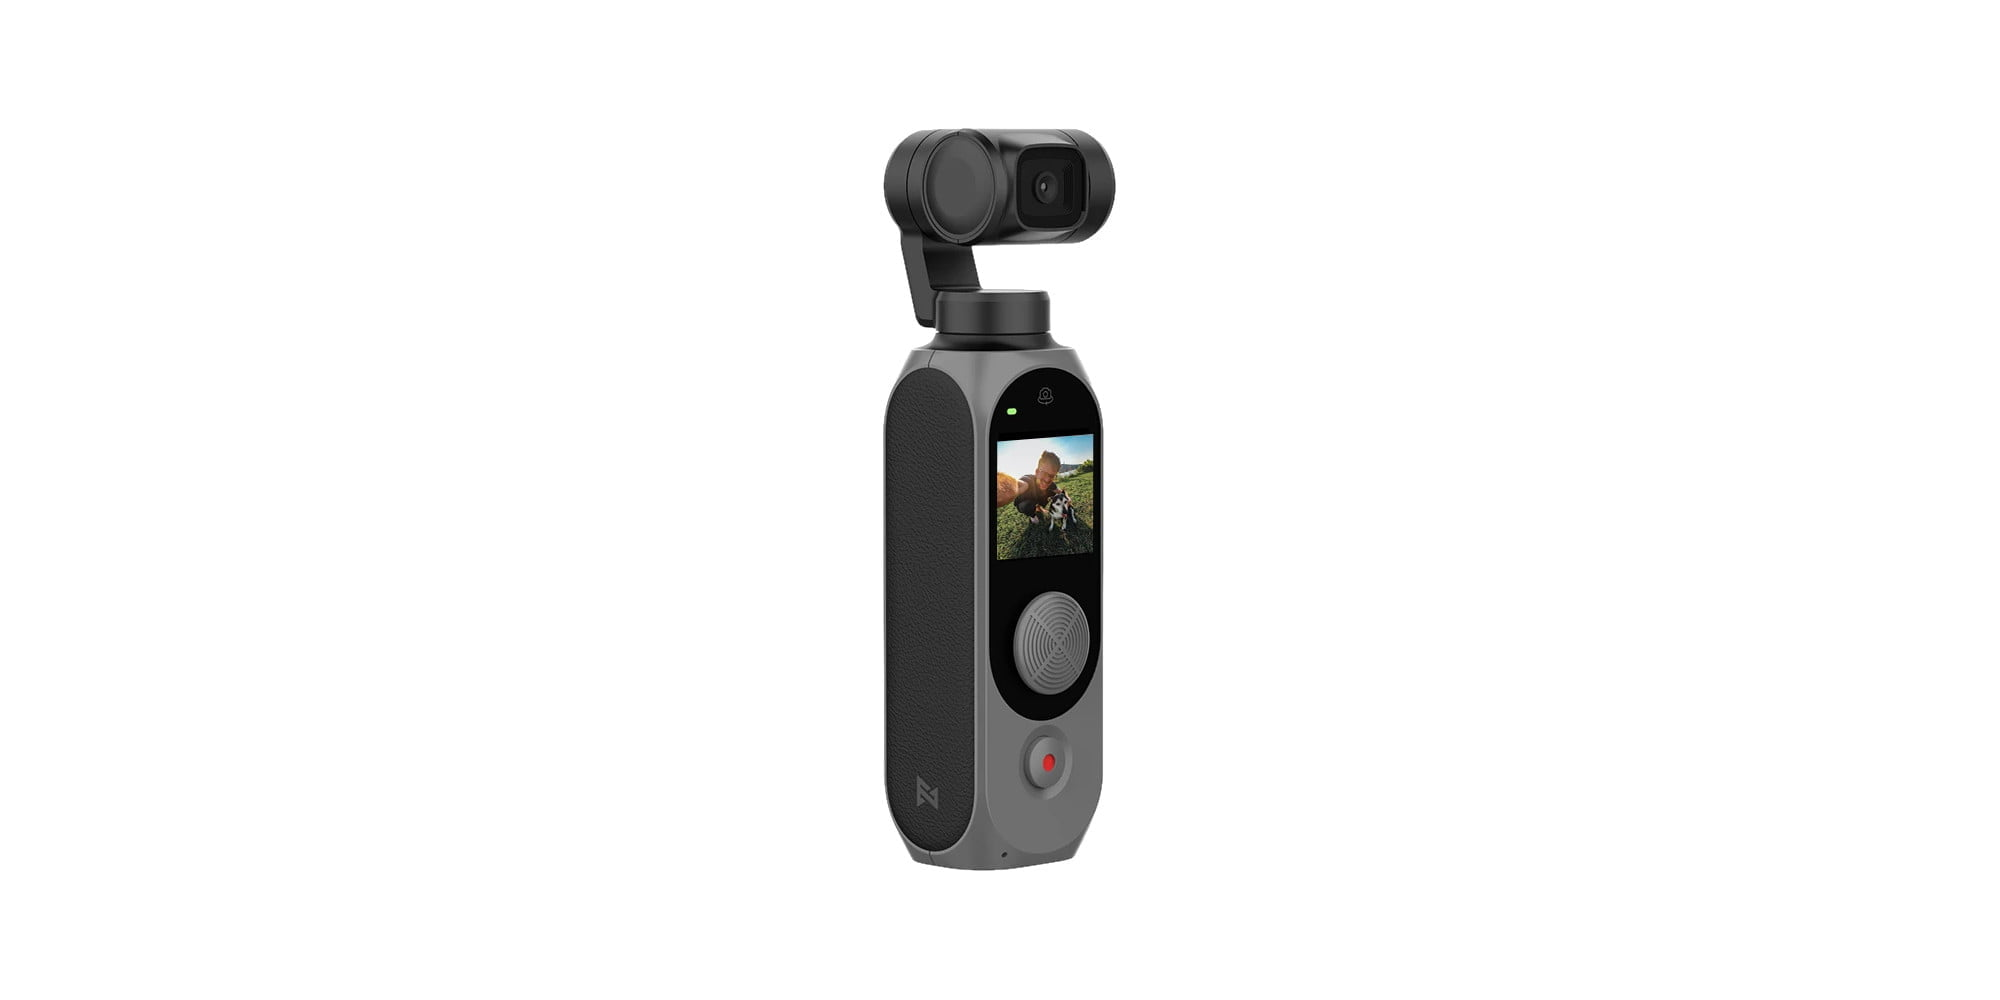 FIMI PALM 2 FPV Gimbal Camera Upgraded 4K 100Mbps WiFi Stabilizer 308 min Battery Life Noise Reduction MIC Face Detection Smart Track